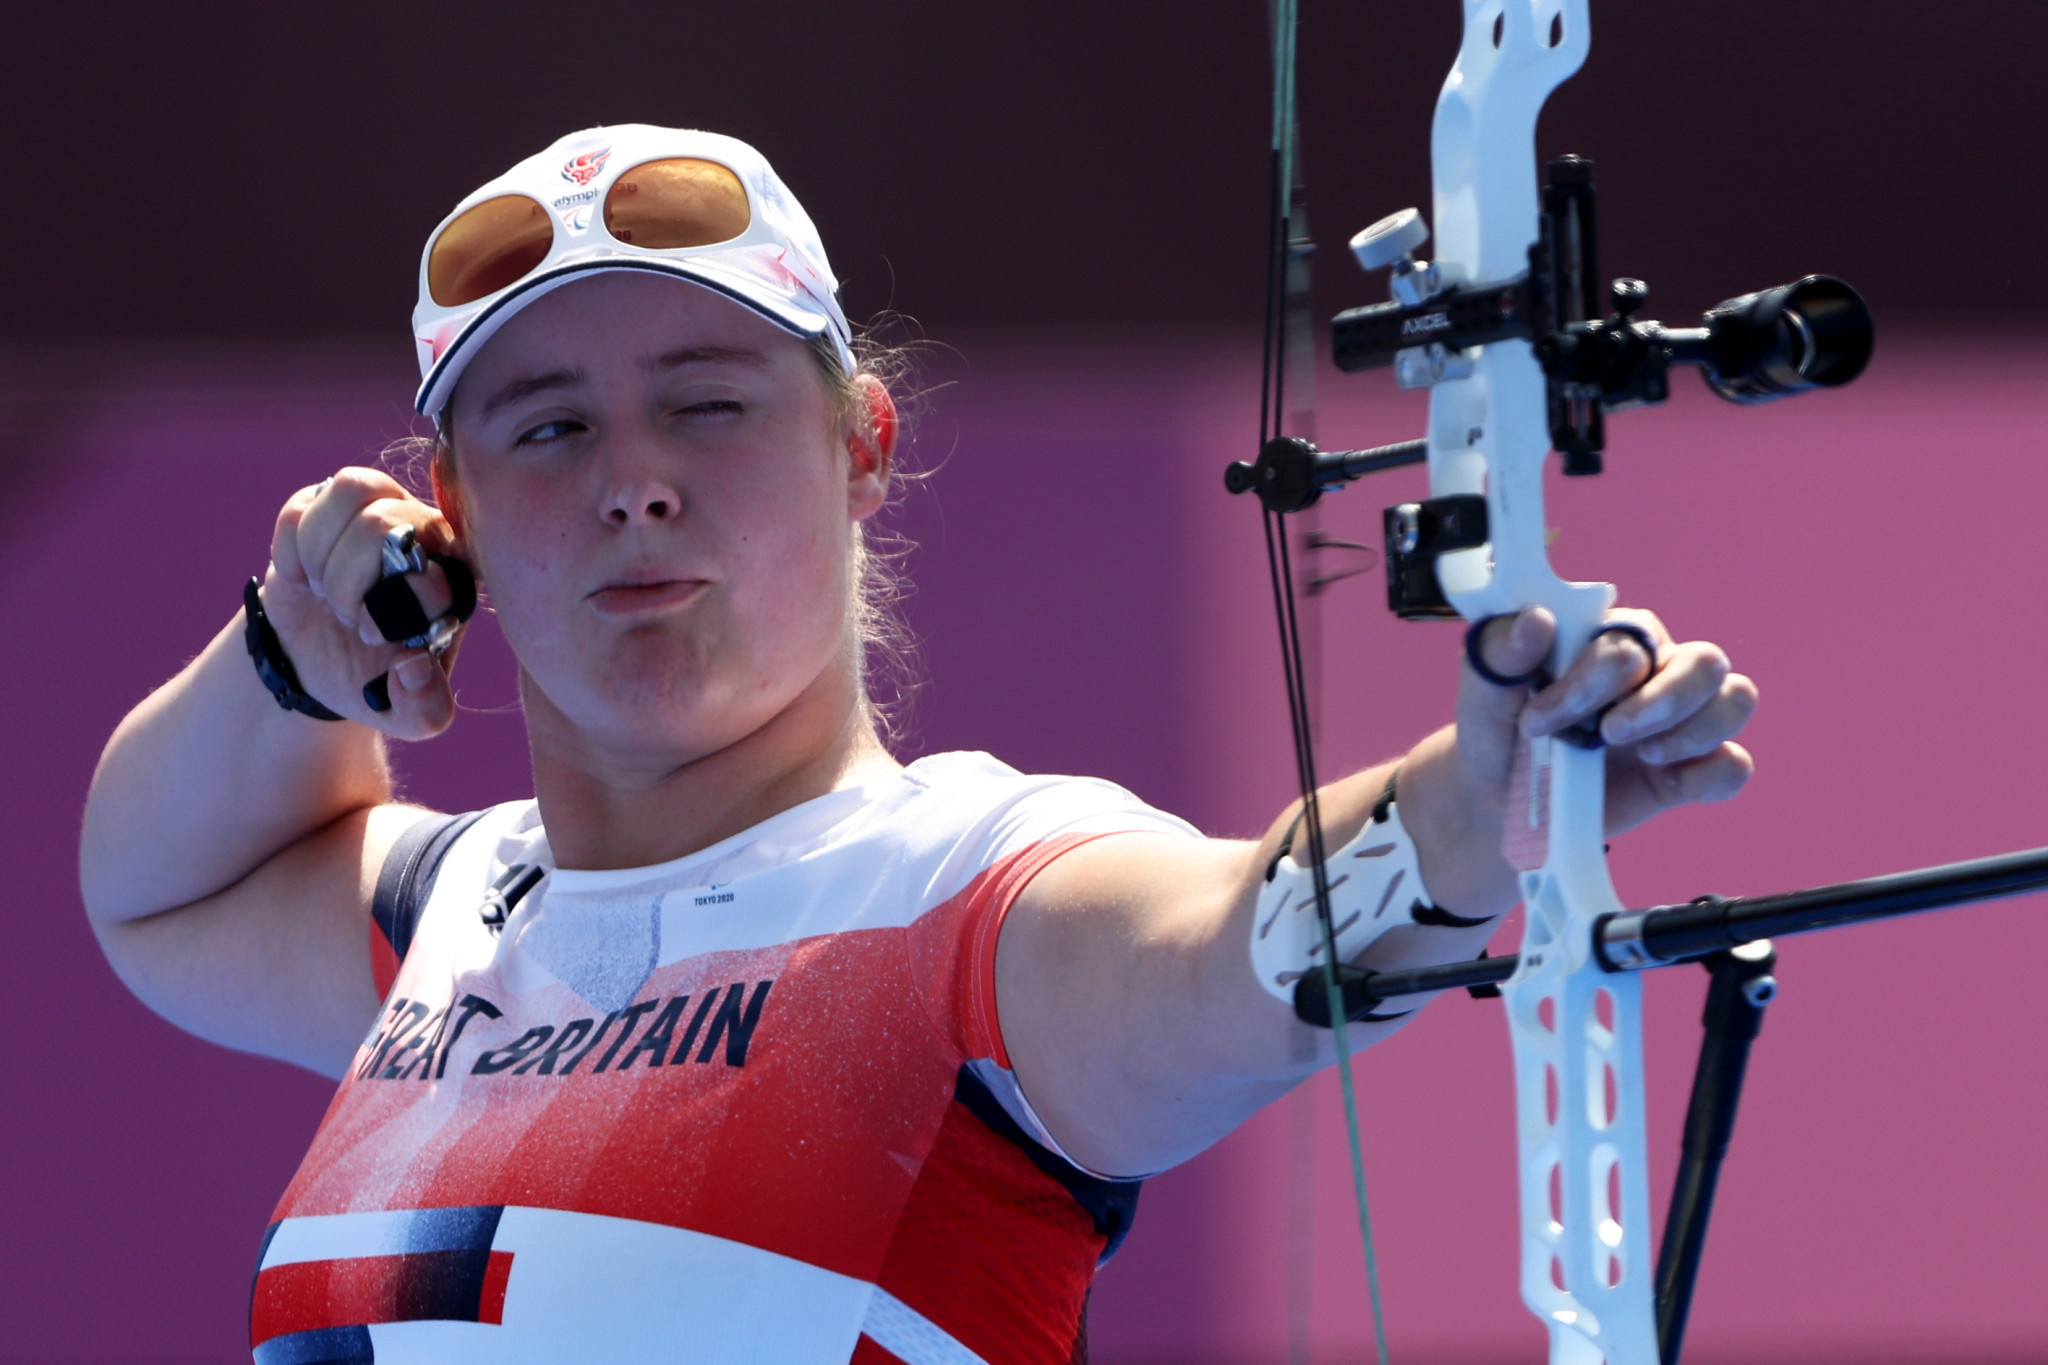 Paterson Pine has dream Paralympic debut with women's compound win